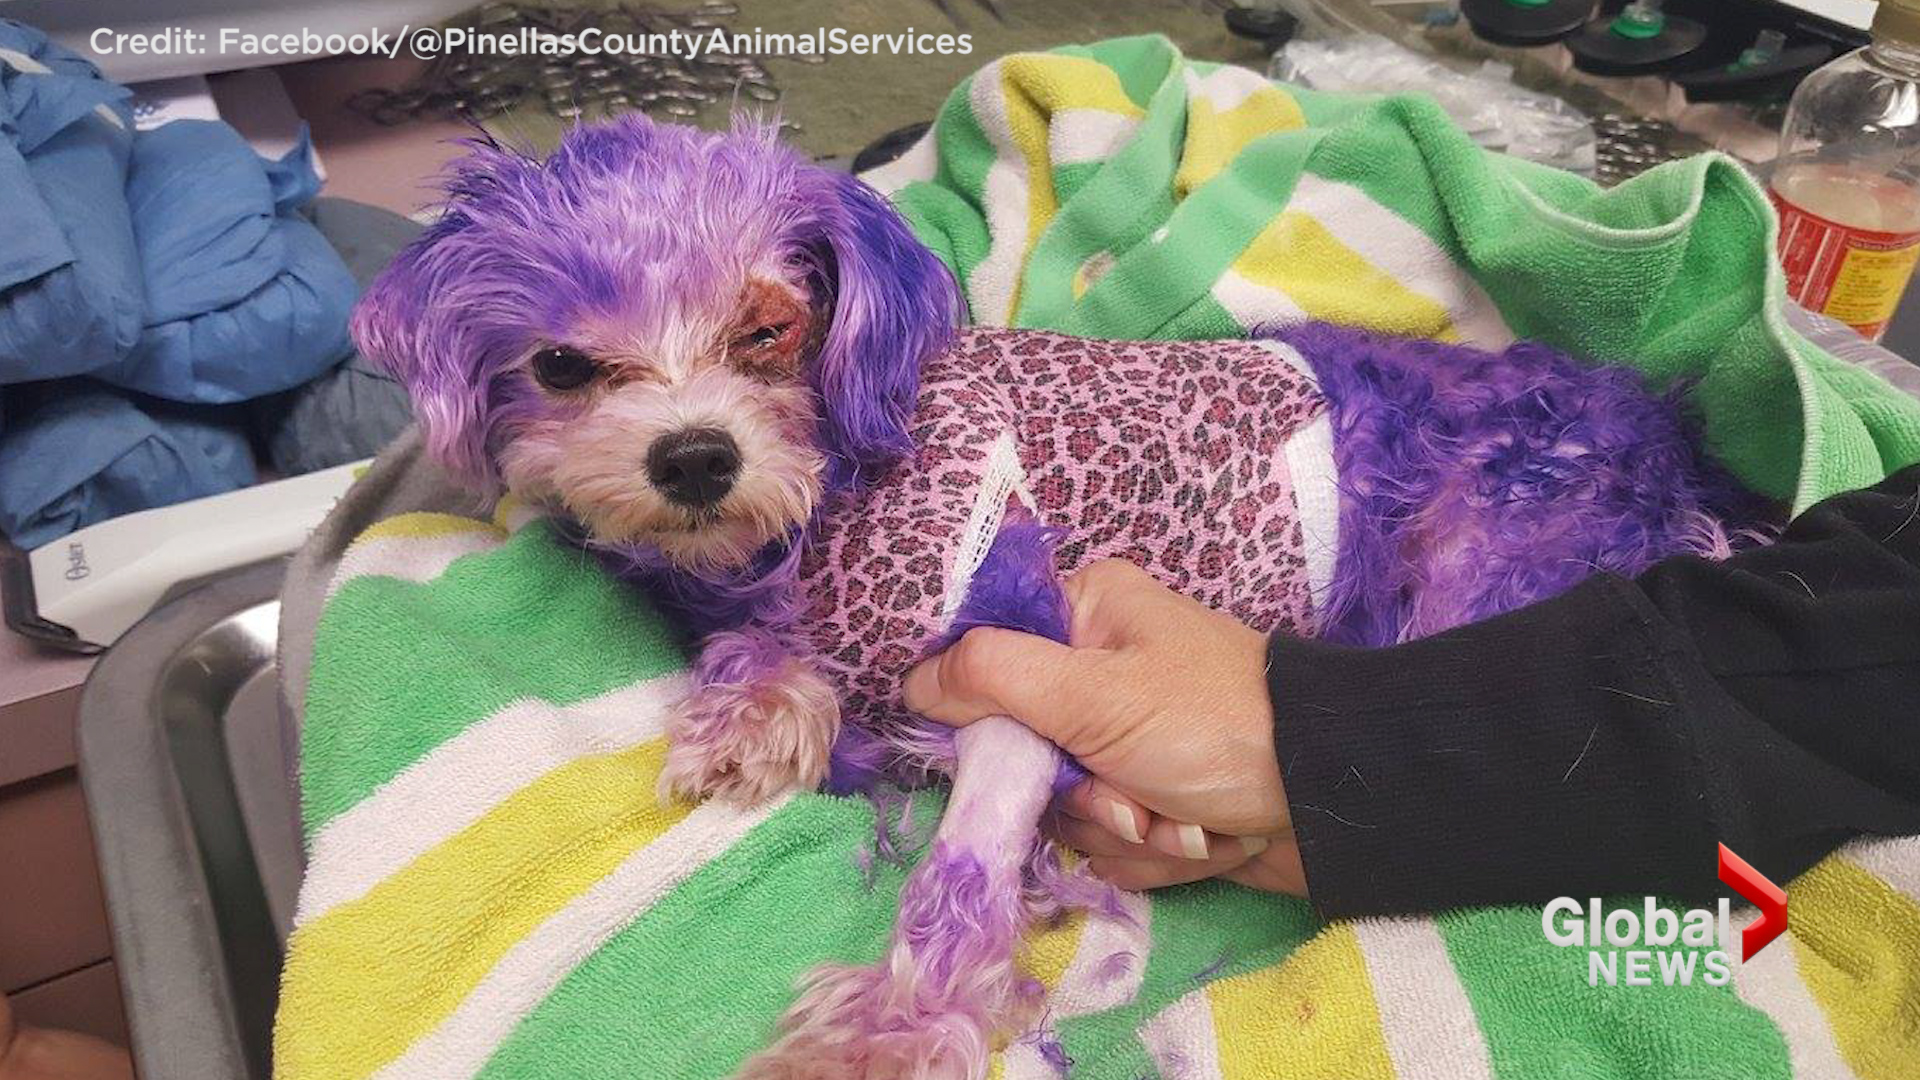 Dog almost dies from severe burns caused by human hair dye